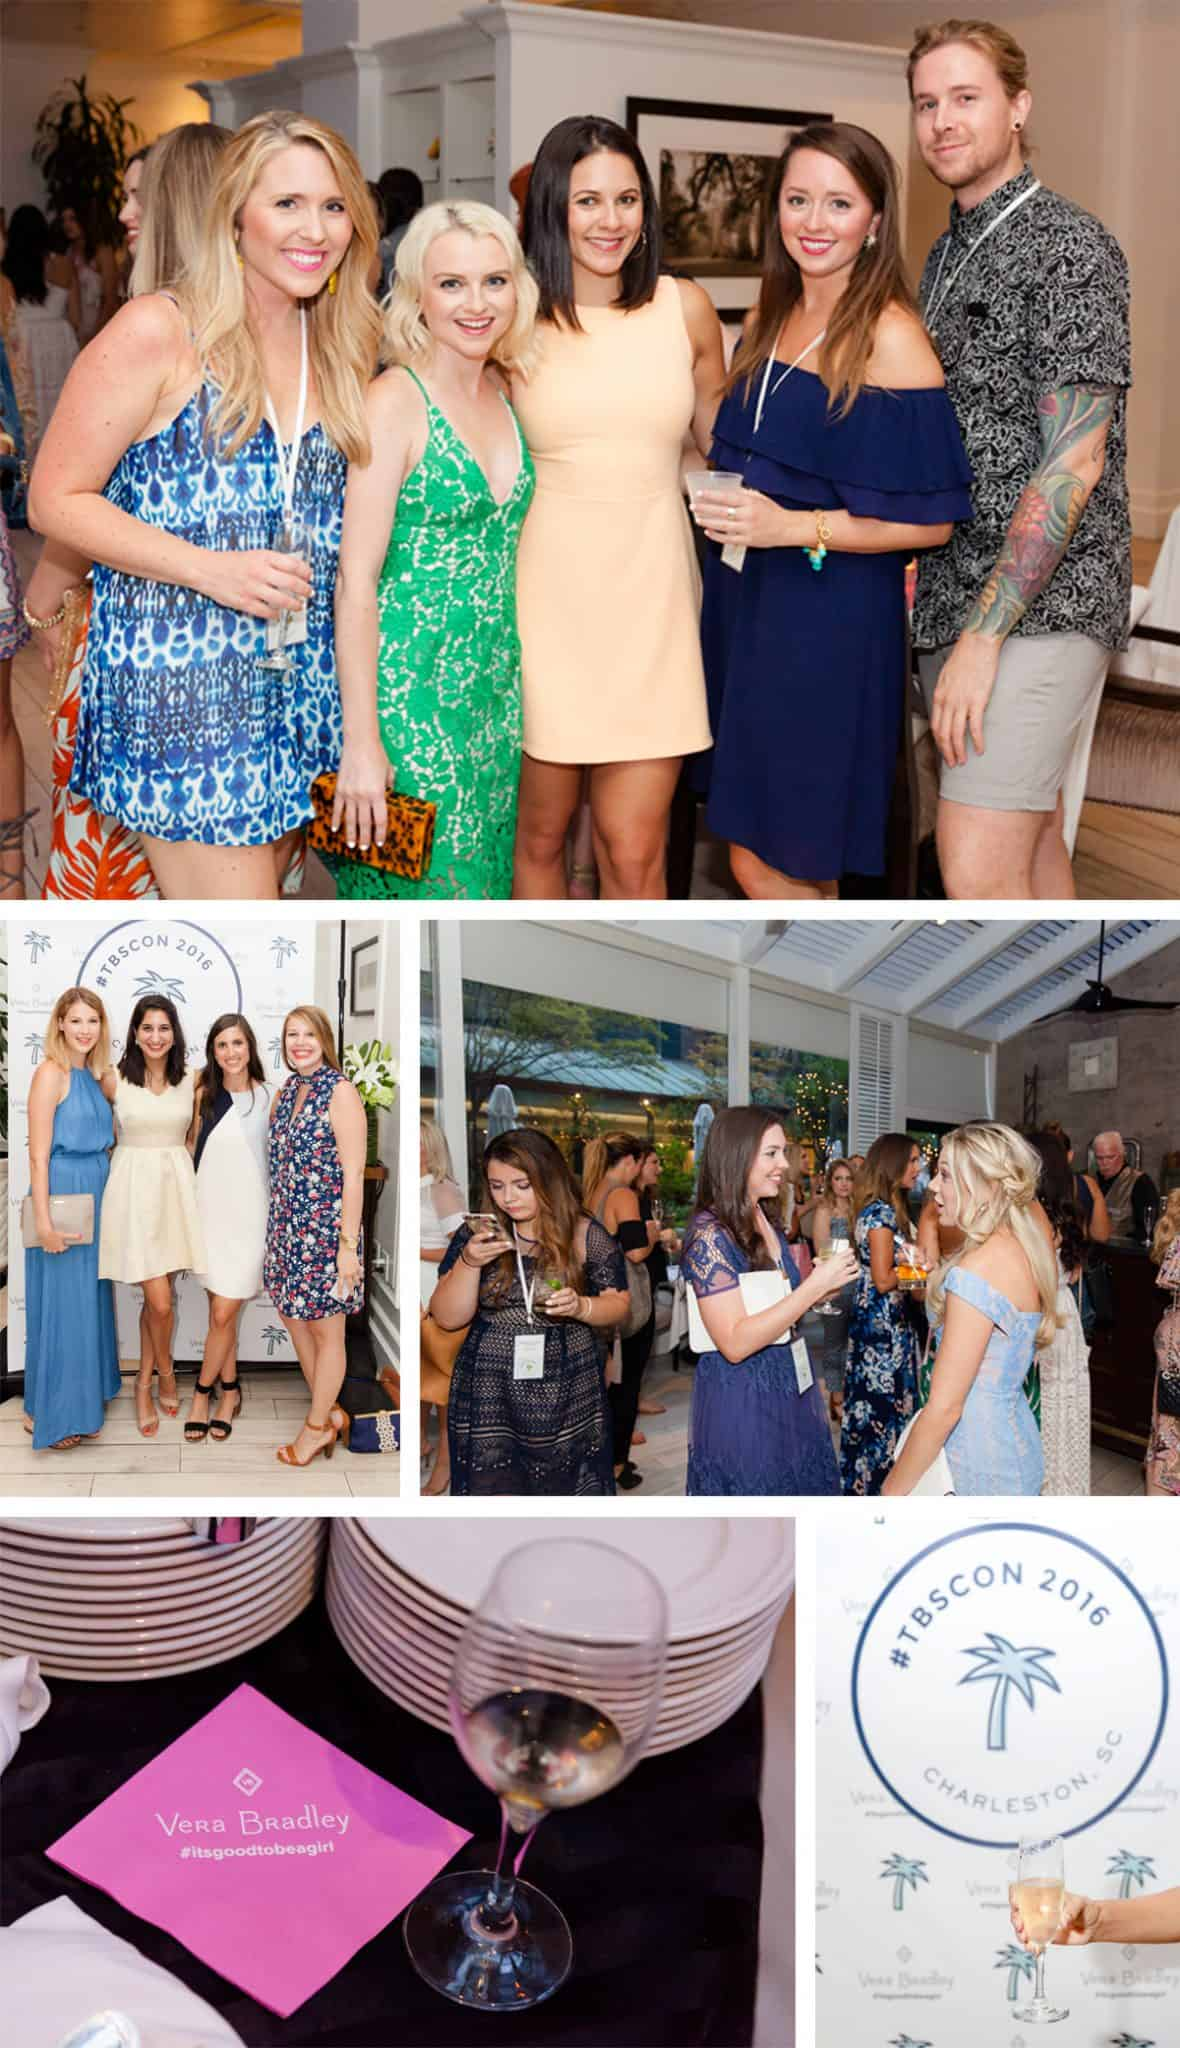 vera bradley welcome party The Blog Societies Conference best blogging conference to attend - My Style Vita @mystylevita